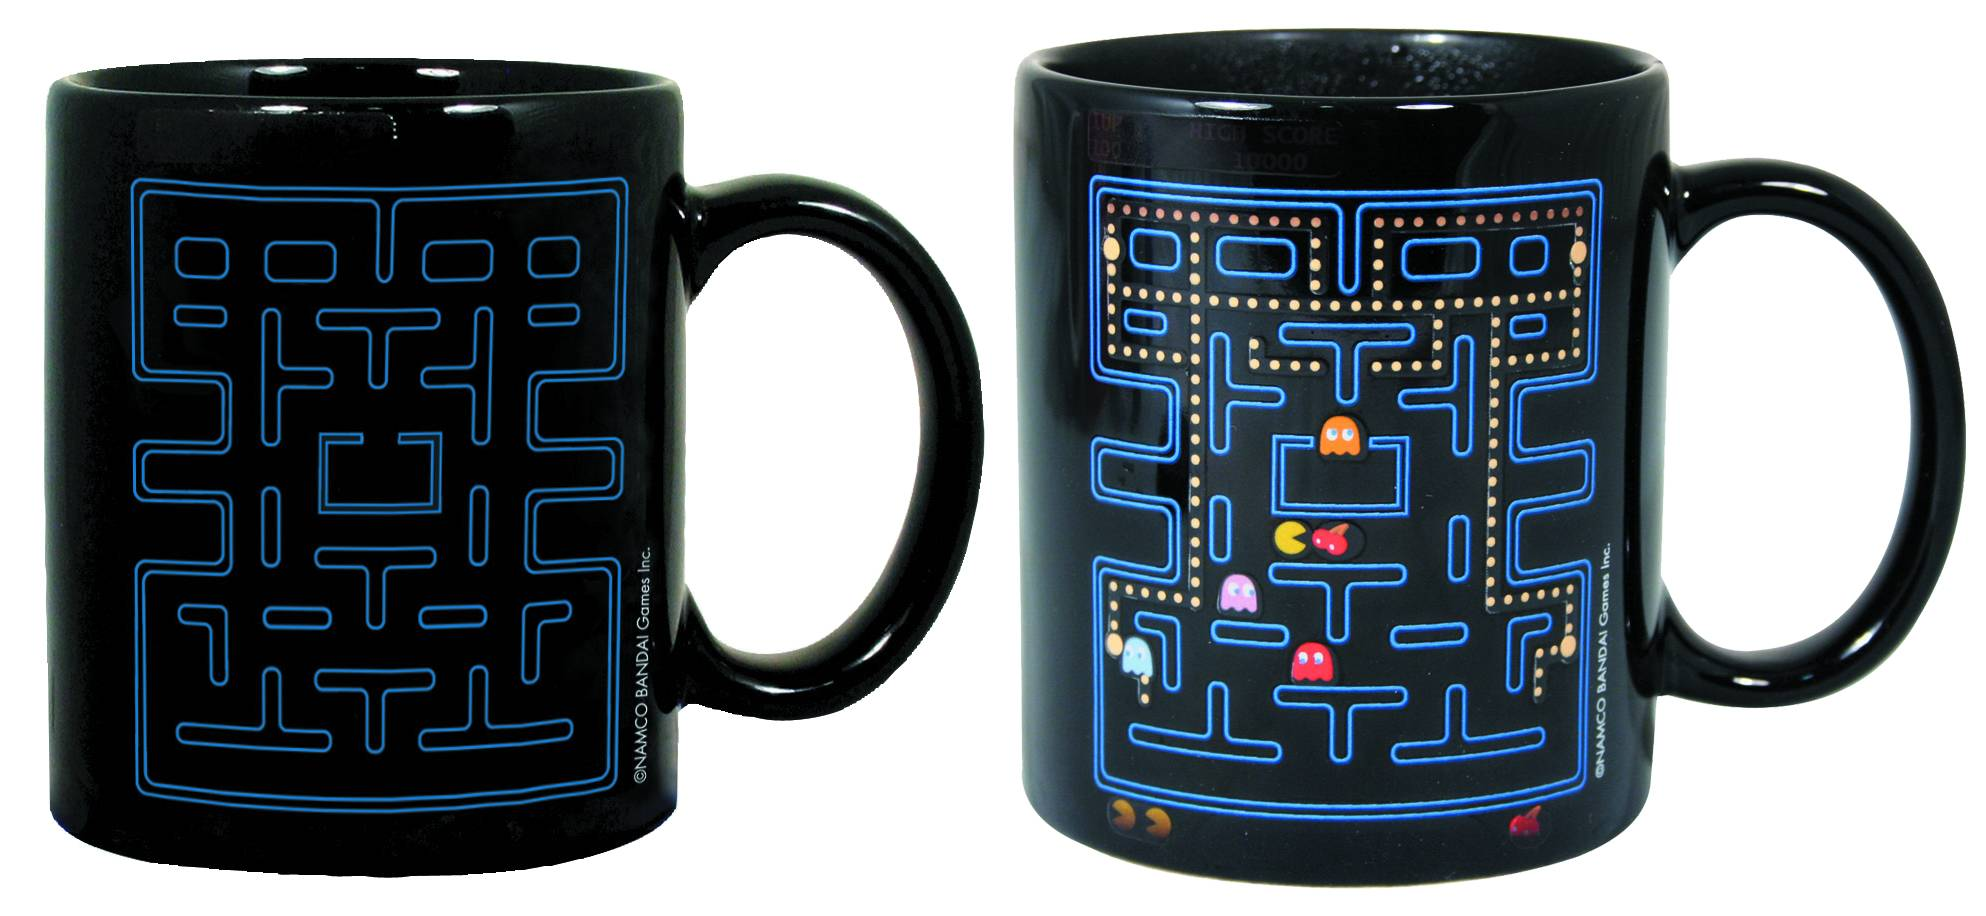 80s Gift Ideas: Pac-Man Heat Change Mug